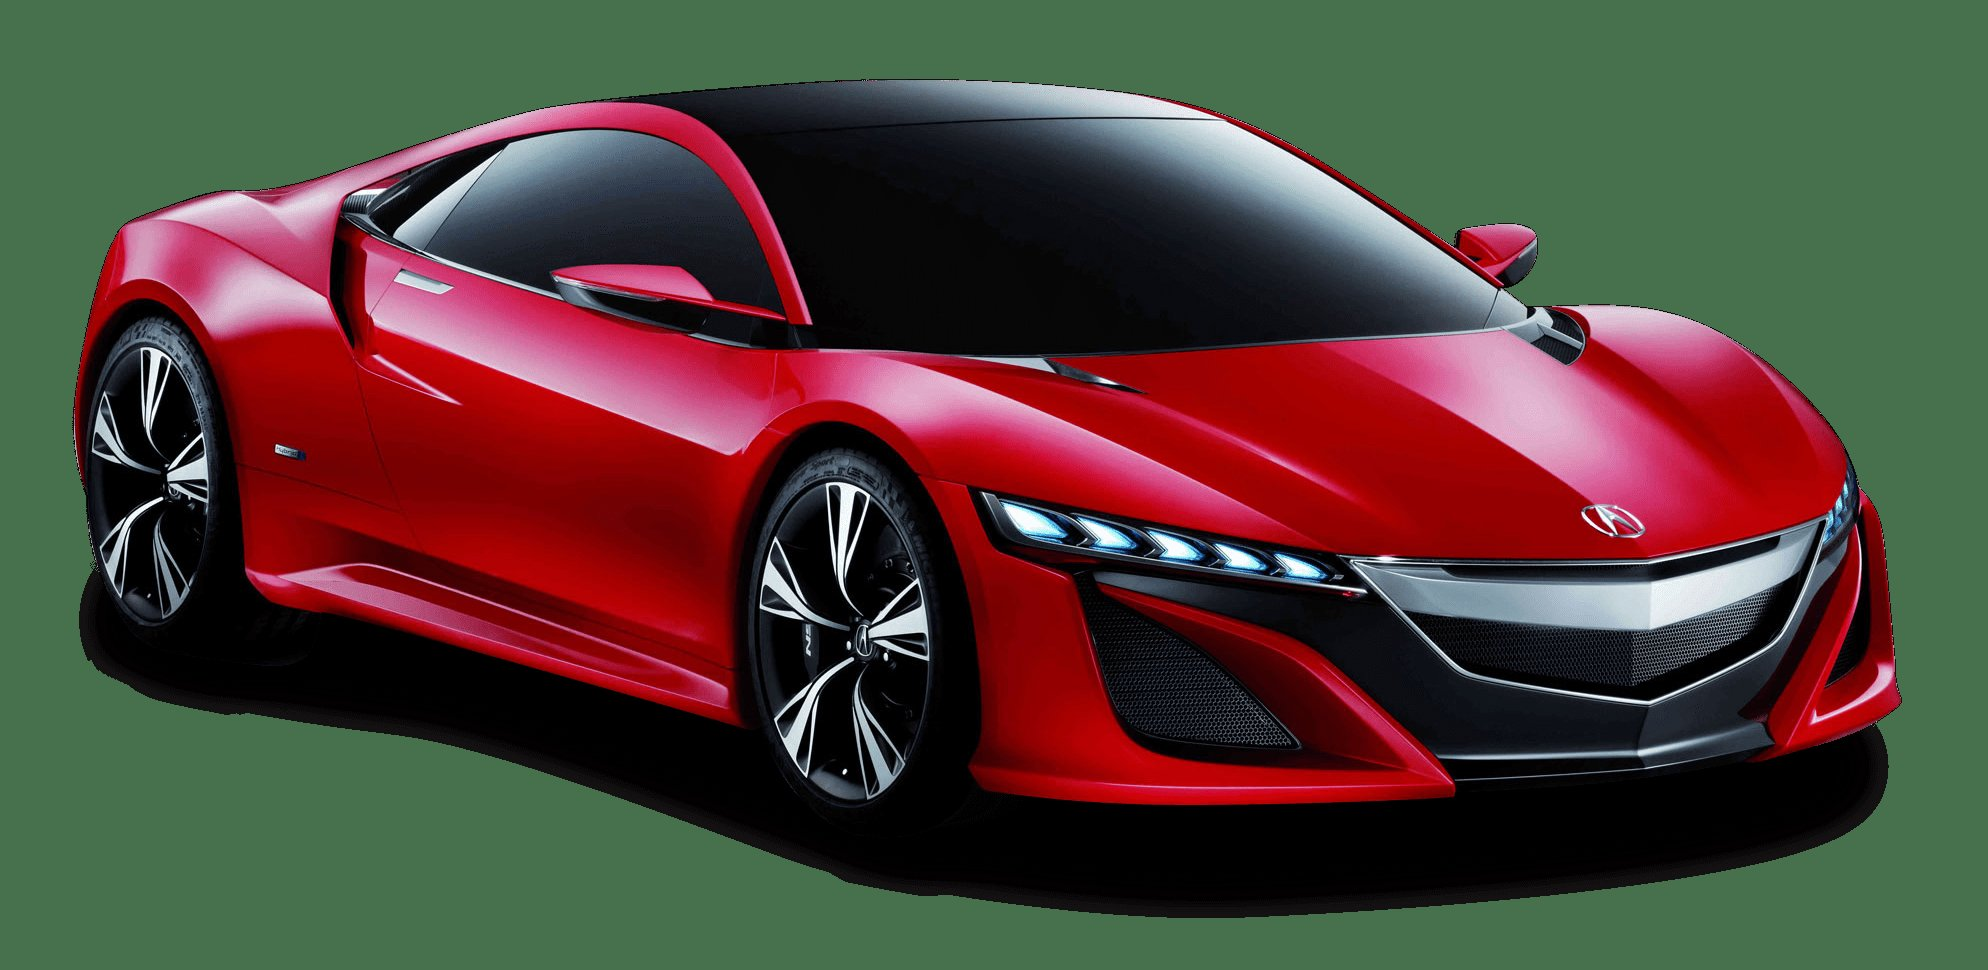 Latest Red Acura Nsx Front View Car Png Image Pngpix Free Download